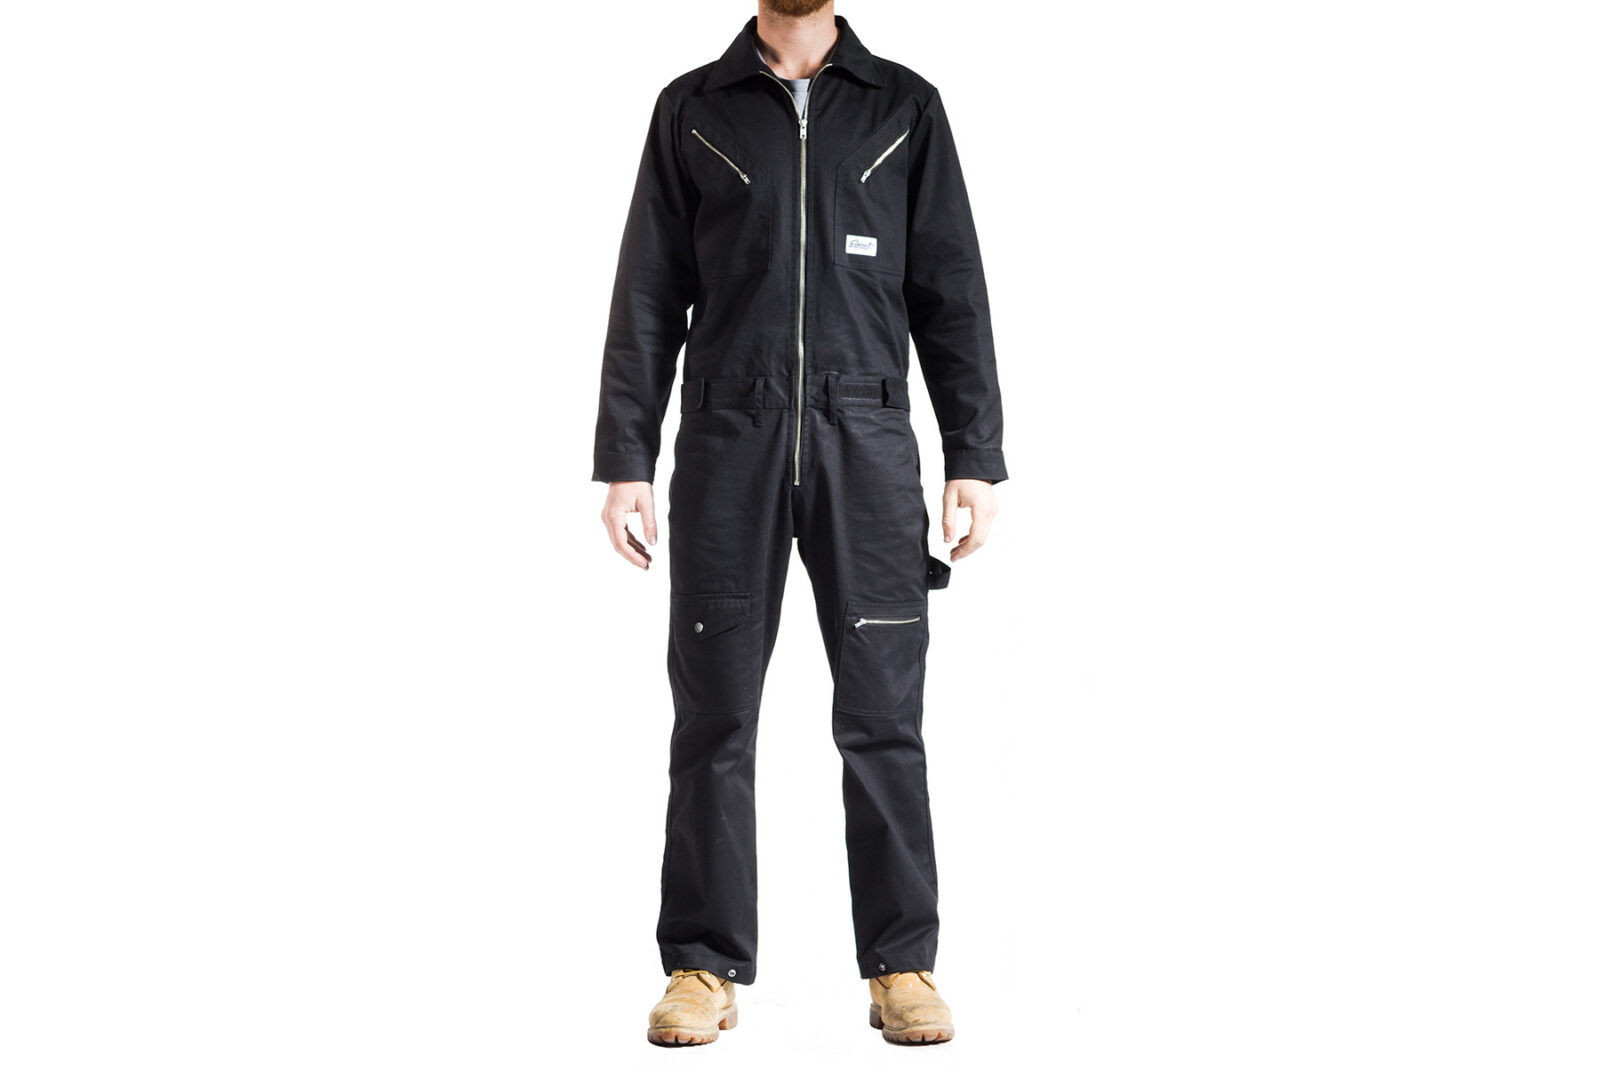 Earnest Co. Black Bancho Overalls 1600x1079 - Earnest Co. Black Bancho Overalls